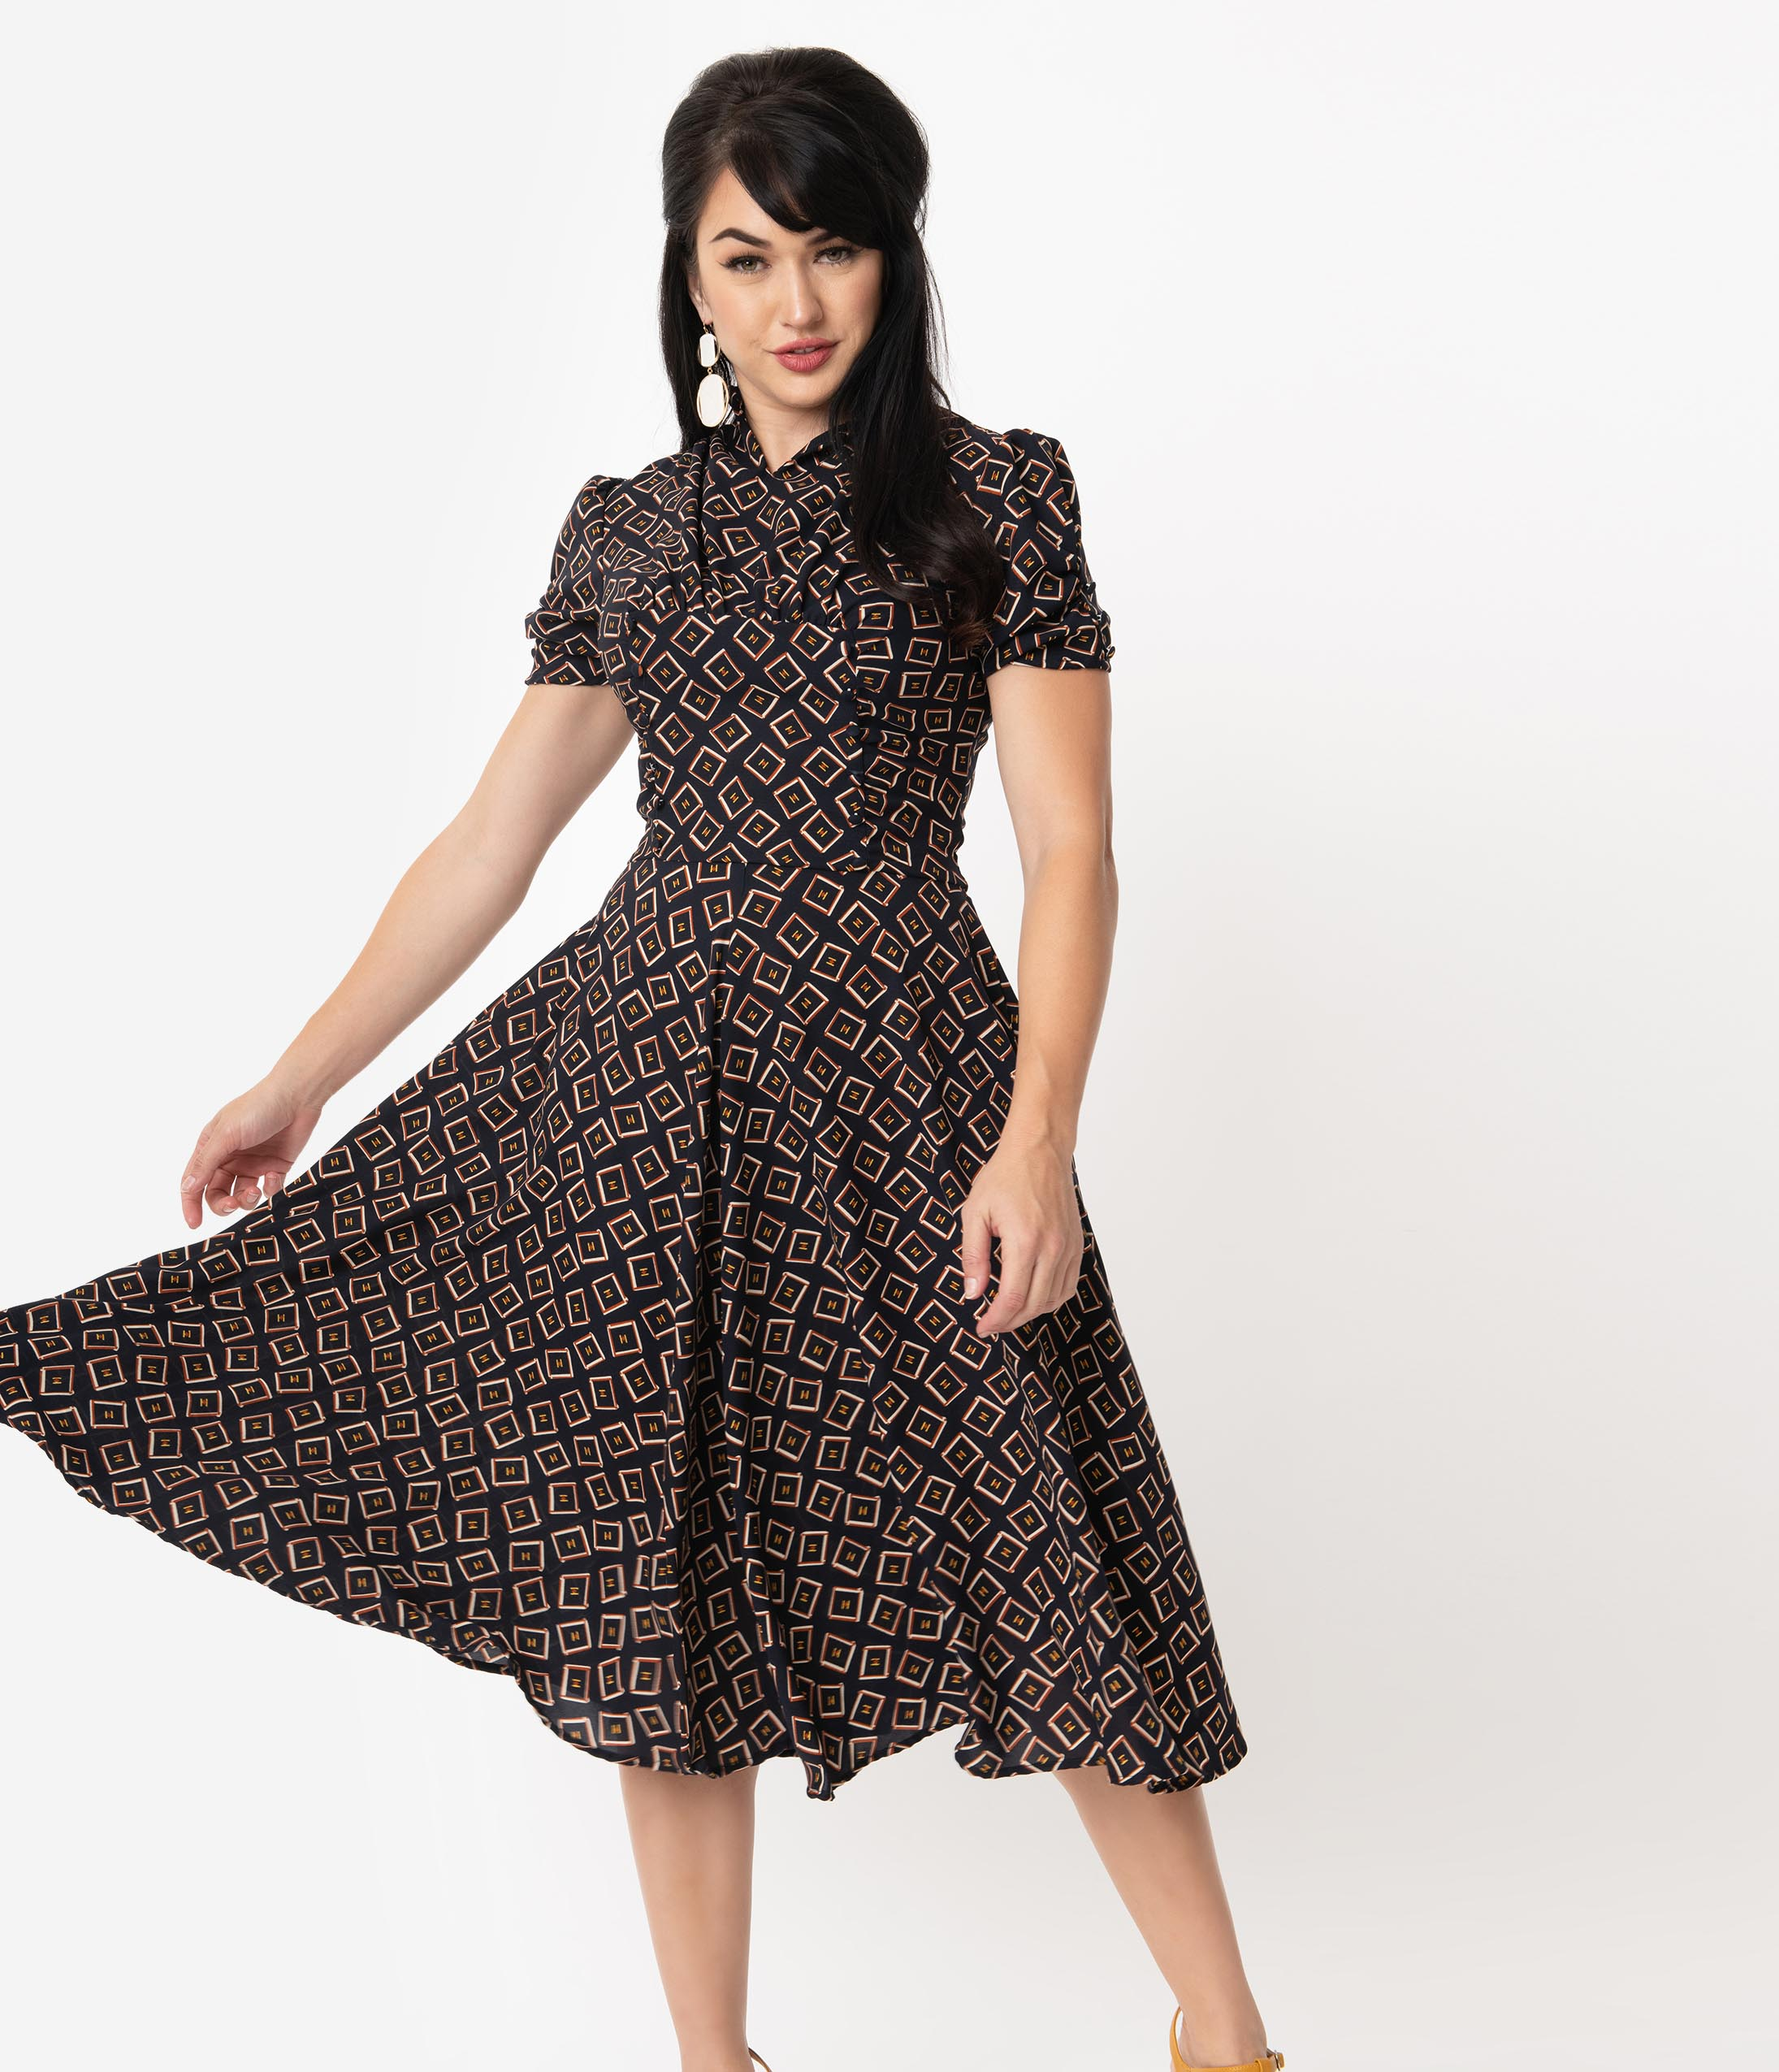 500 Vintage Style Dresses for Sale | Vintage Inspired Dresses Unique Vintage 1940S Style Black Box Print Camilla Midi Dress $88.00 AT vintagedancer.com